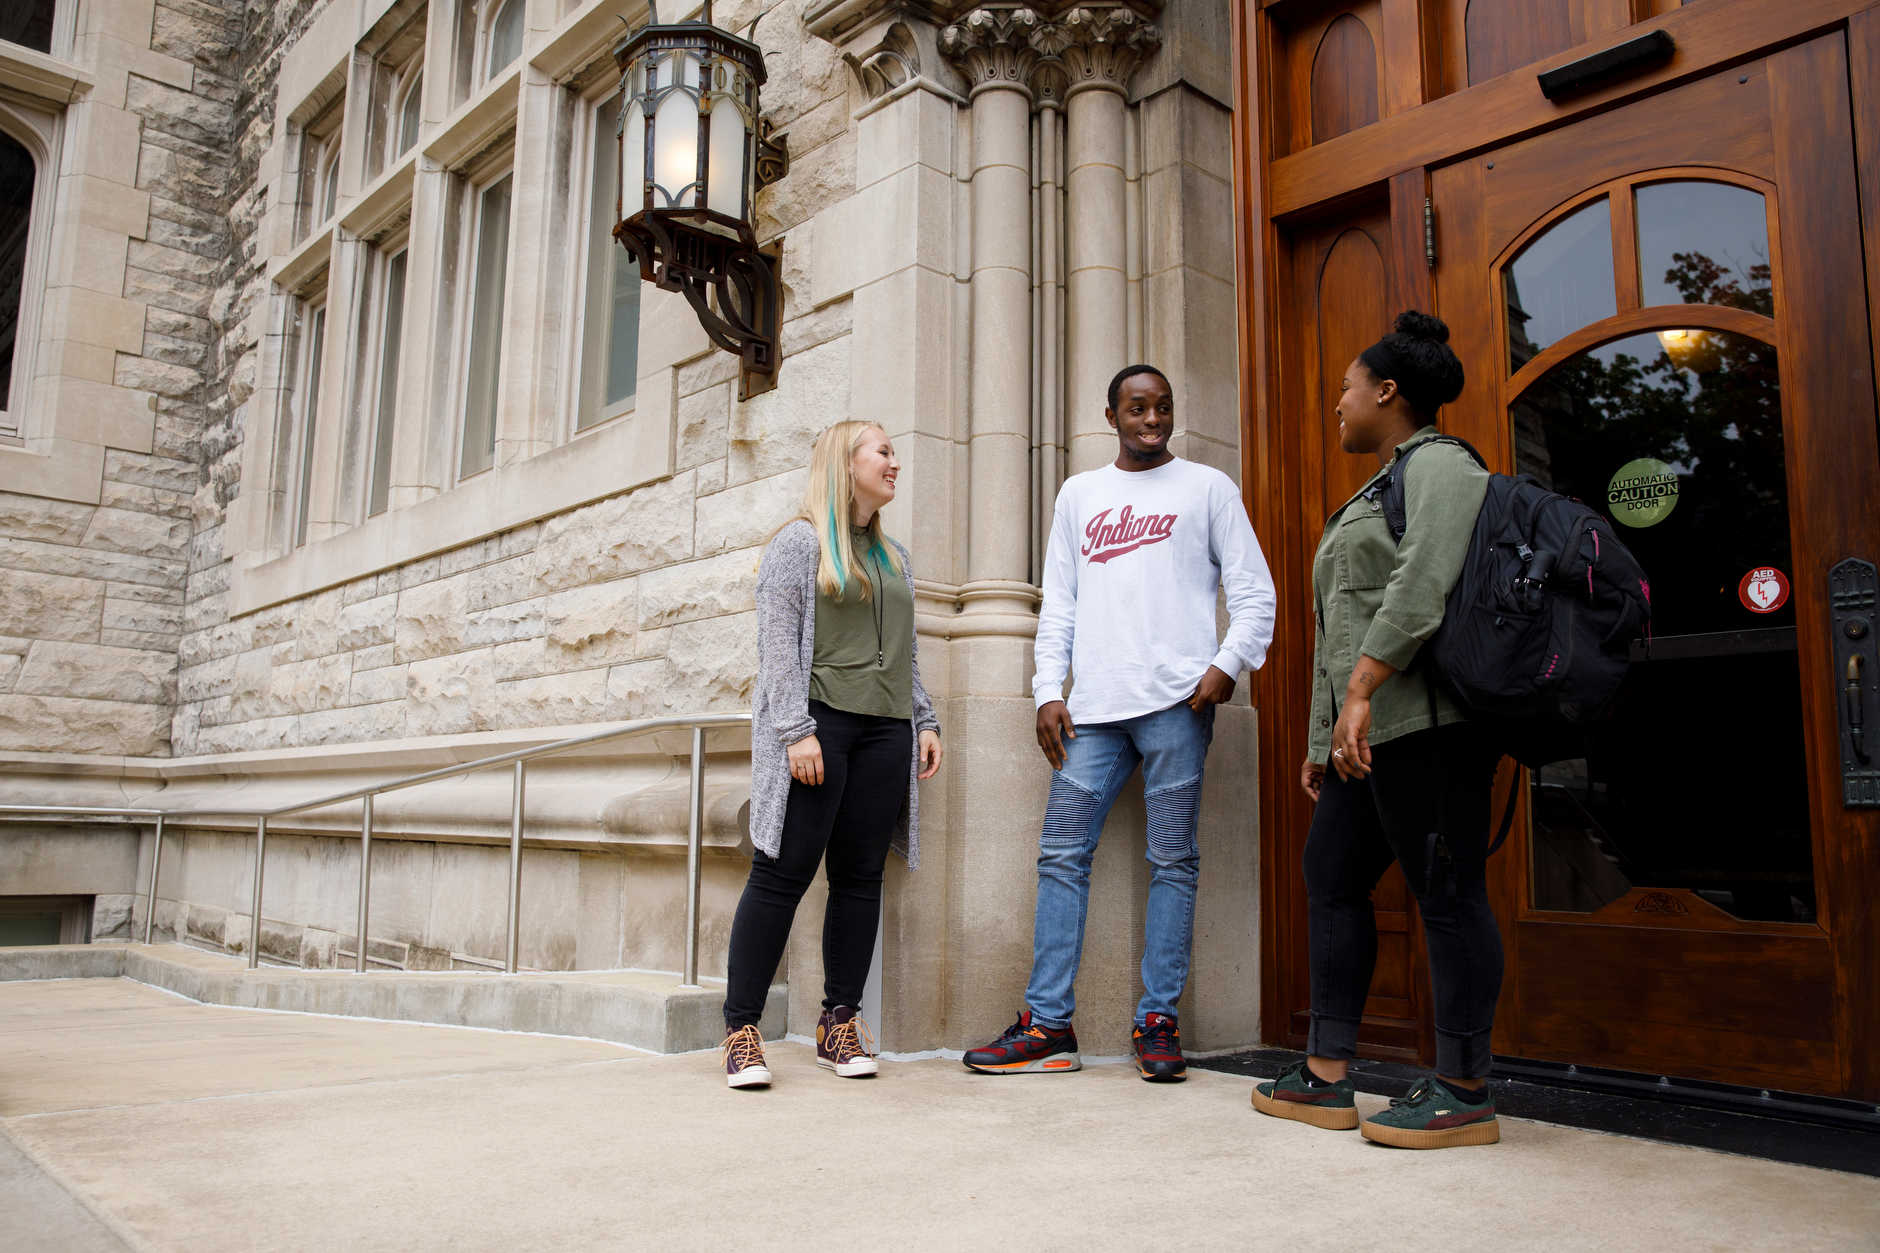 Photo shoot outside Franklin Hall at The Media School at Indiana University on Thursday, Oct. 4, 2018.